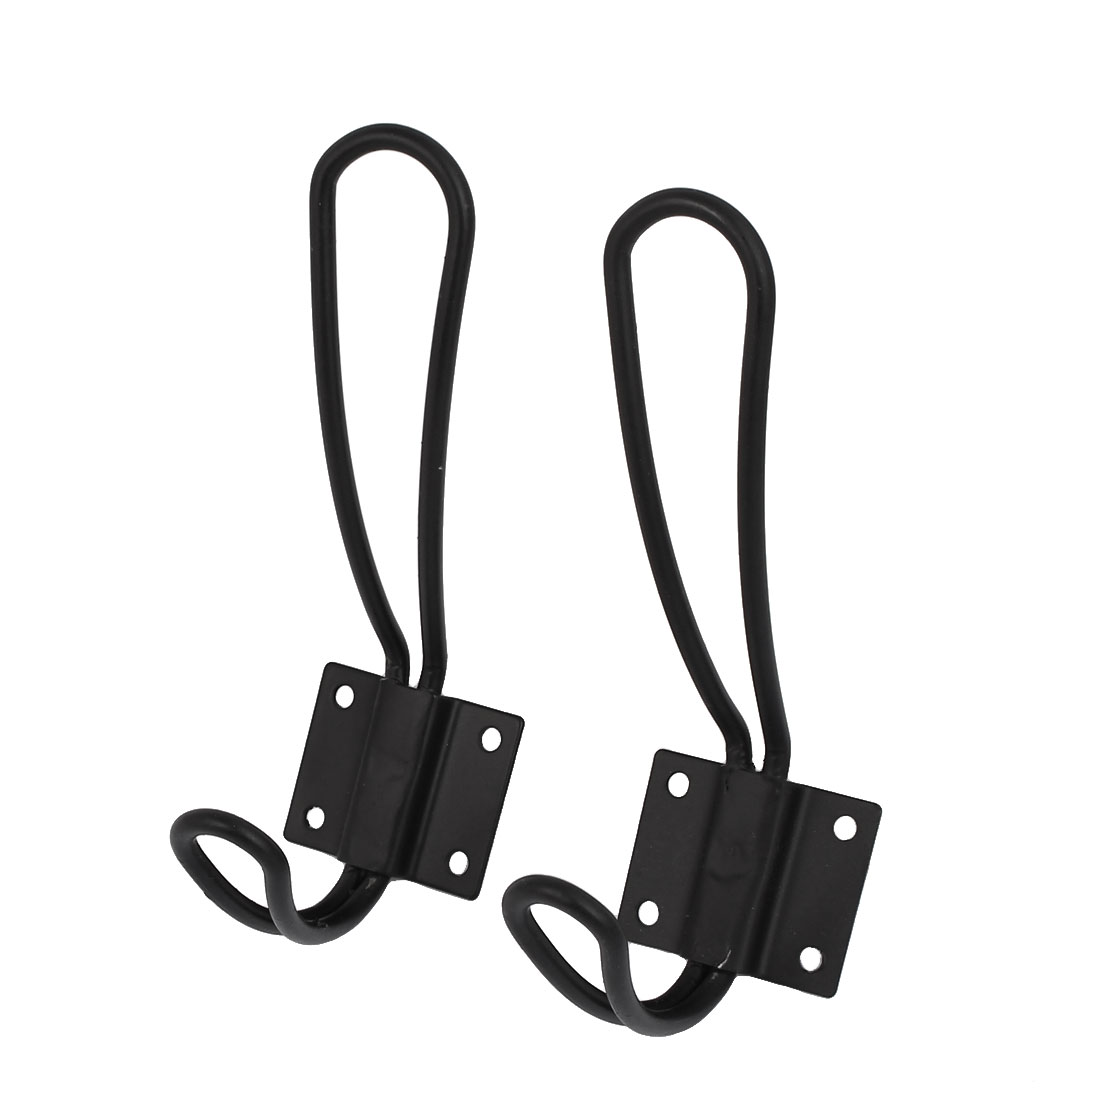 Clothes Towels Display Wall Mounted Hanger Hook Bracket Black 2pcs